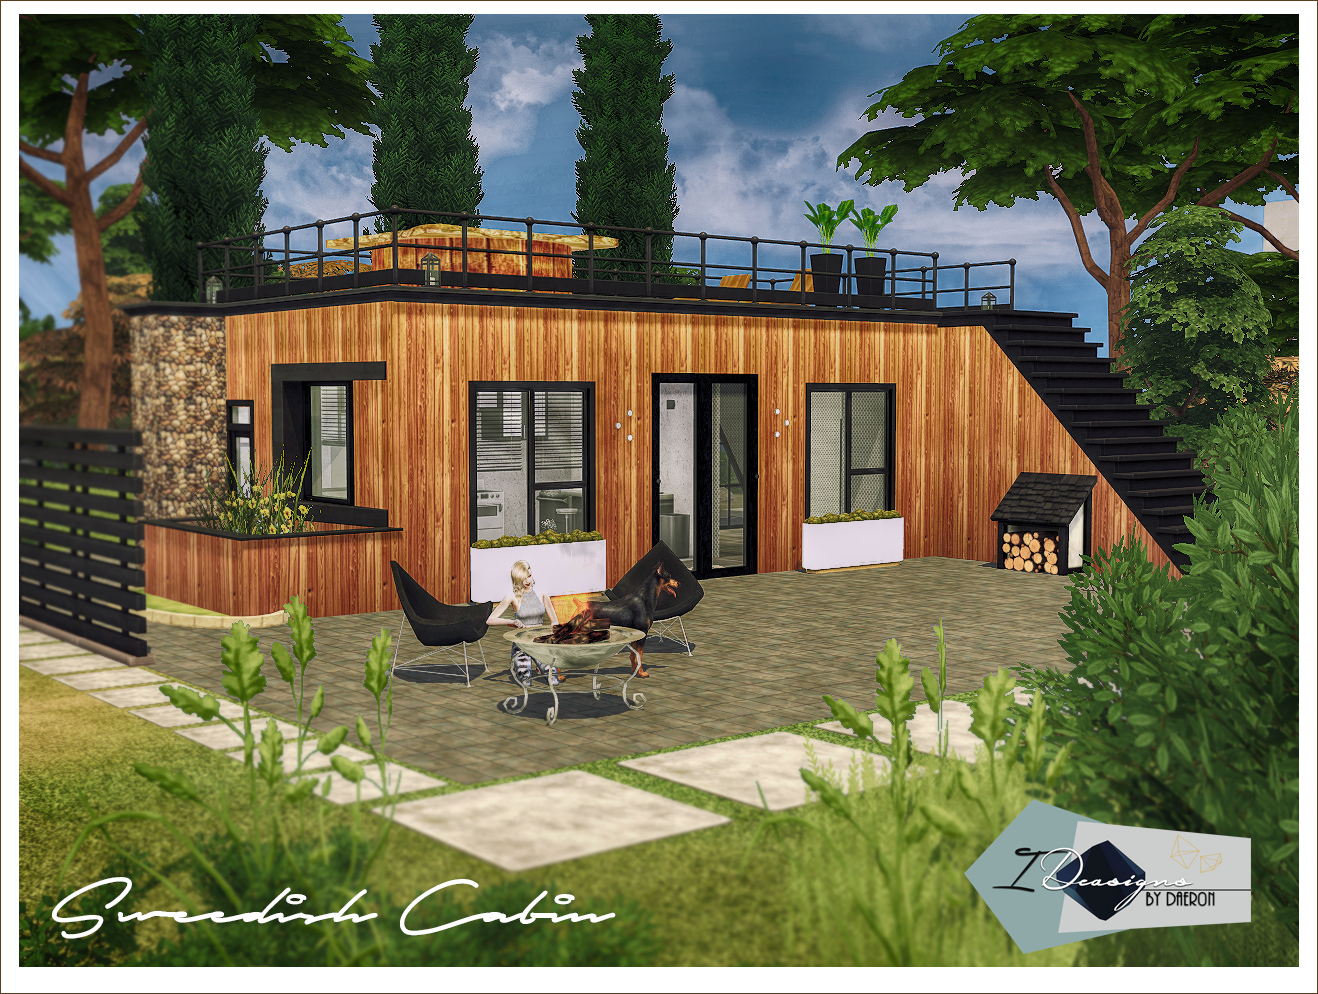 e805d0188c5c1c203505d7bb02a1fb95 - 18+ Small House Floor Plans Sims 4 Background